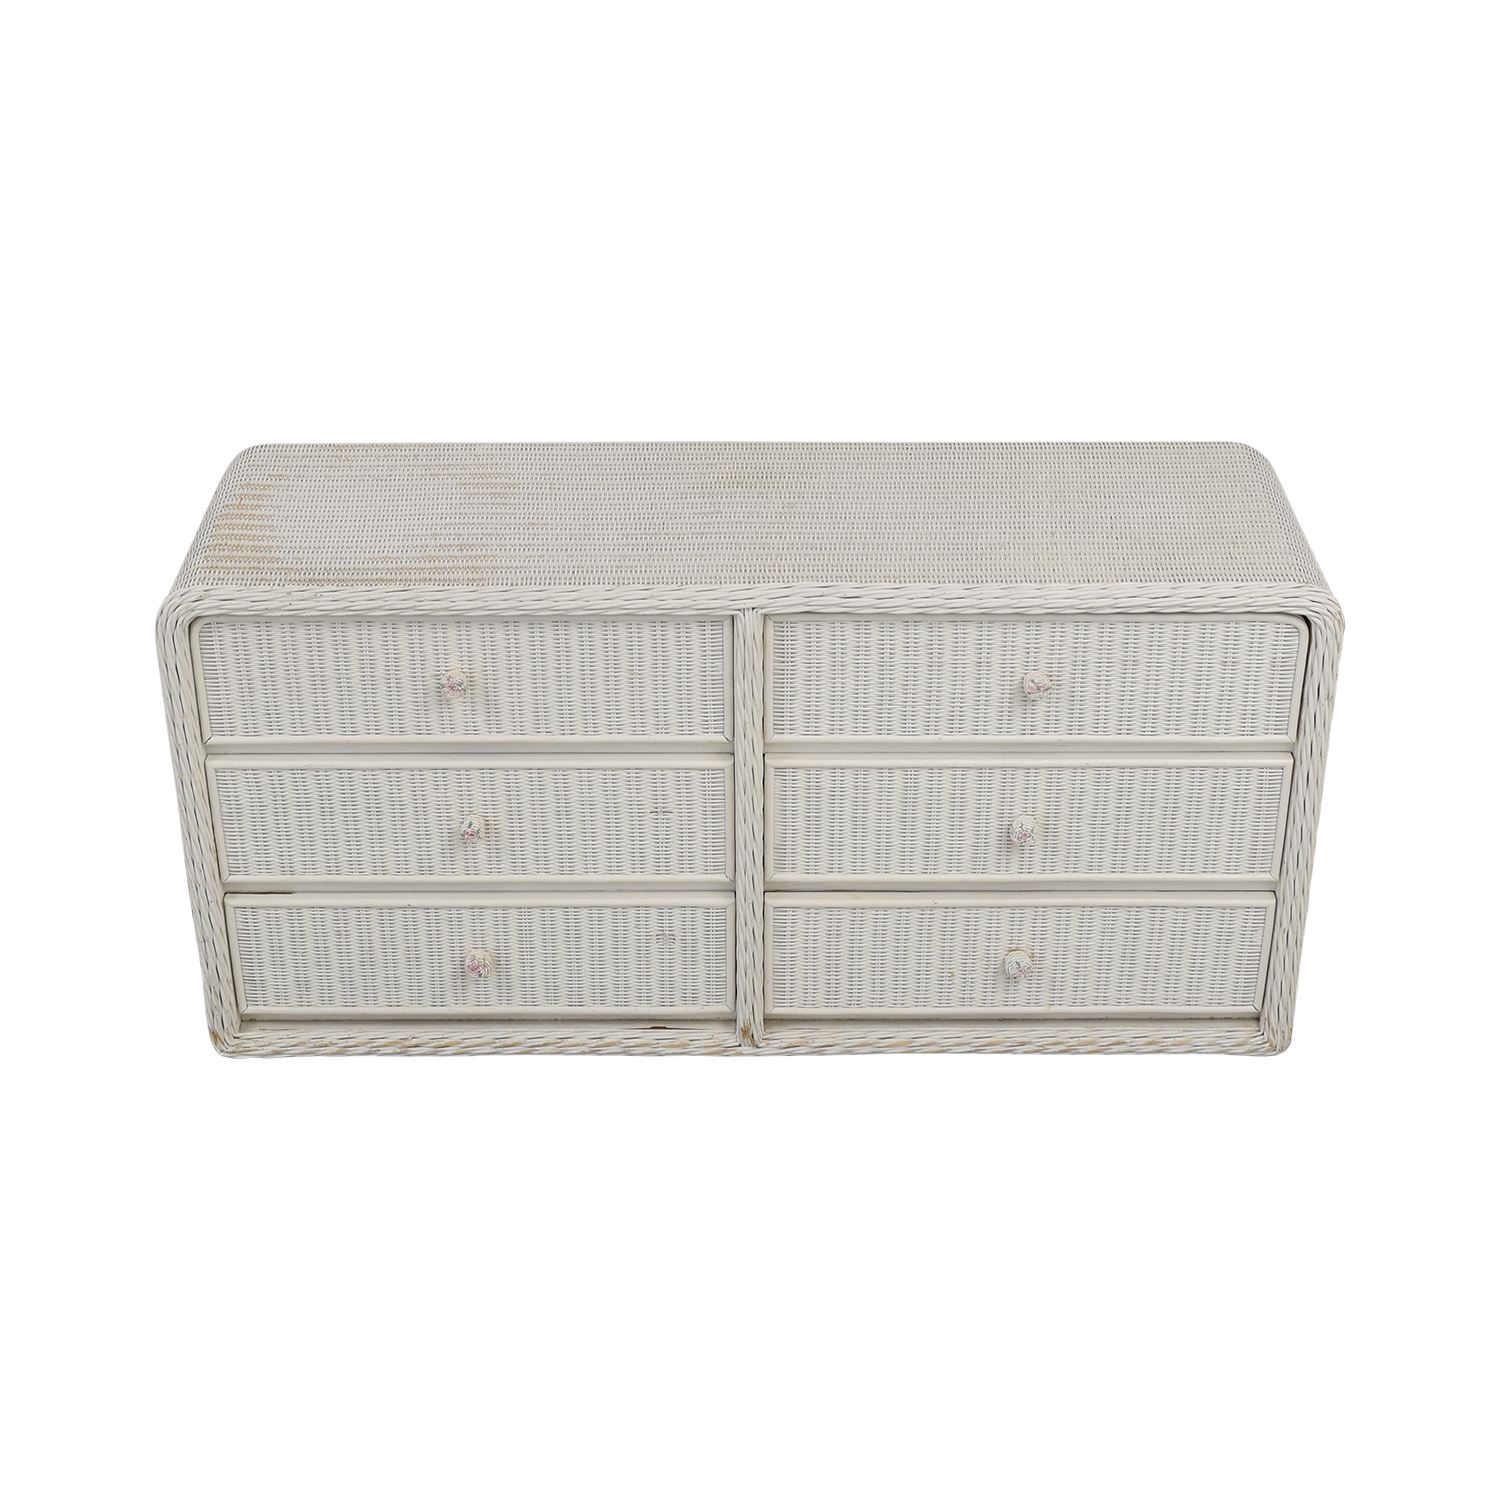 White Wicker Chest of Drawers dimensions